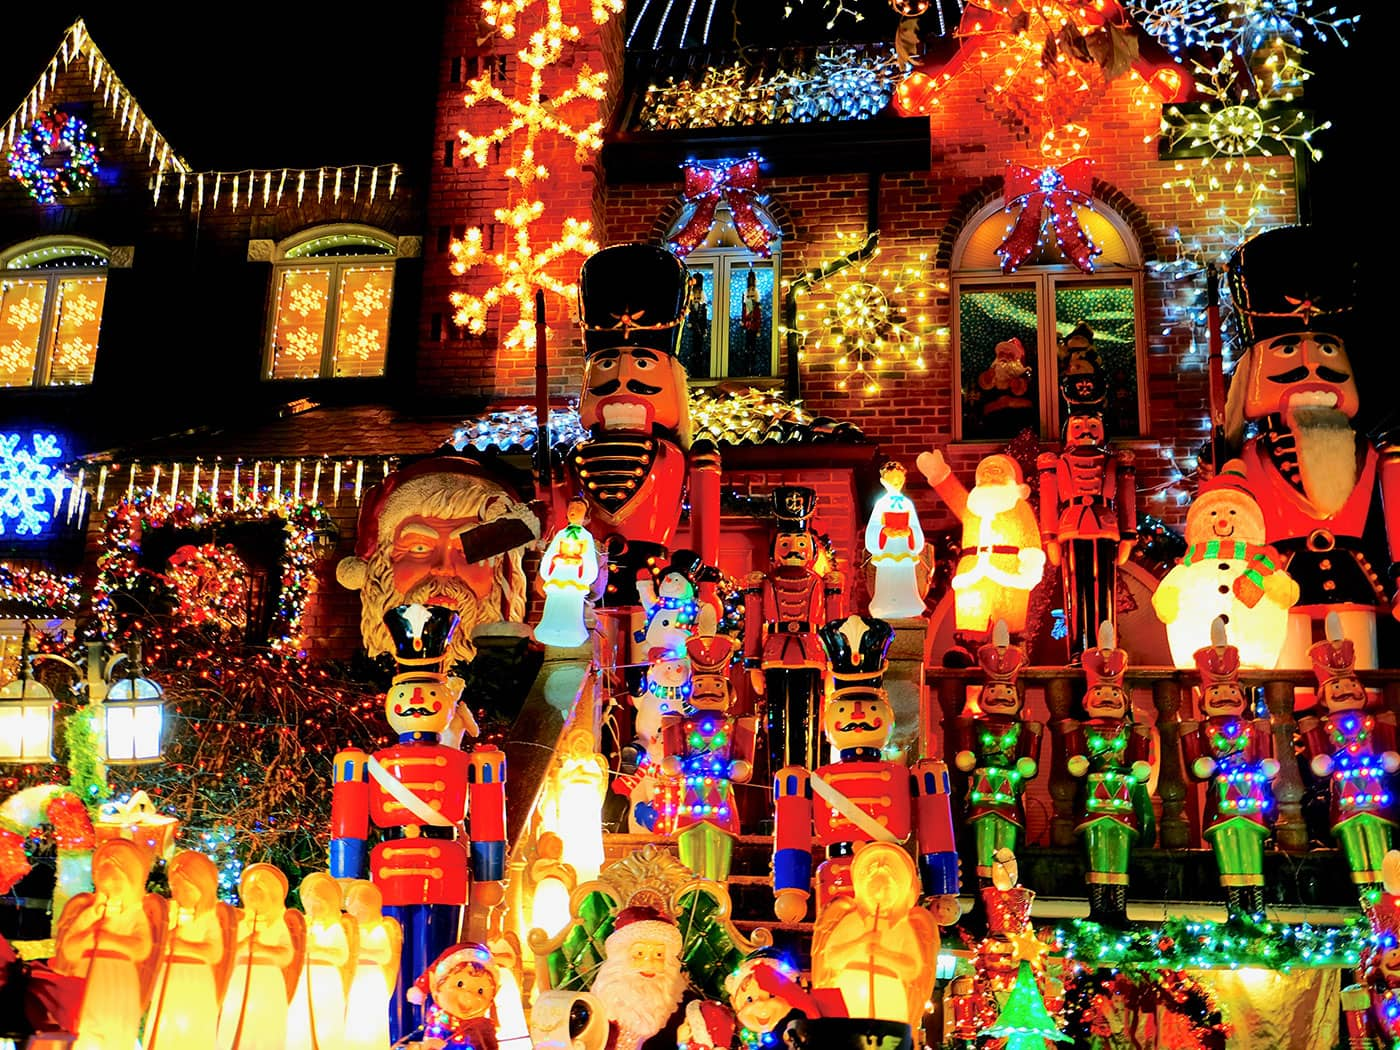 Dyker Heights Christmas Lights - Kerstfiguren